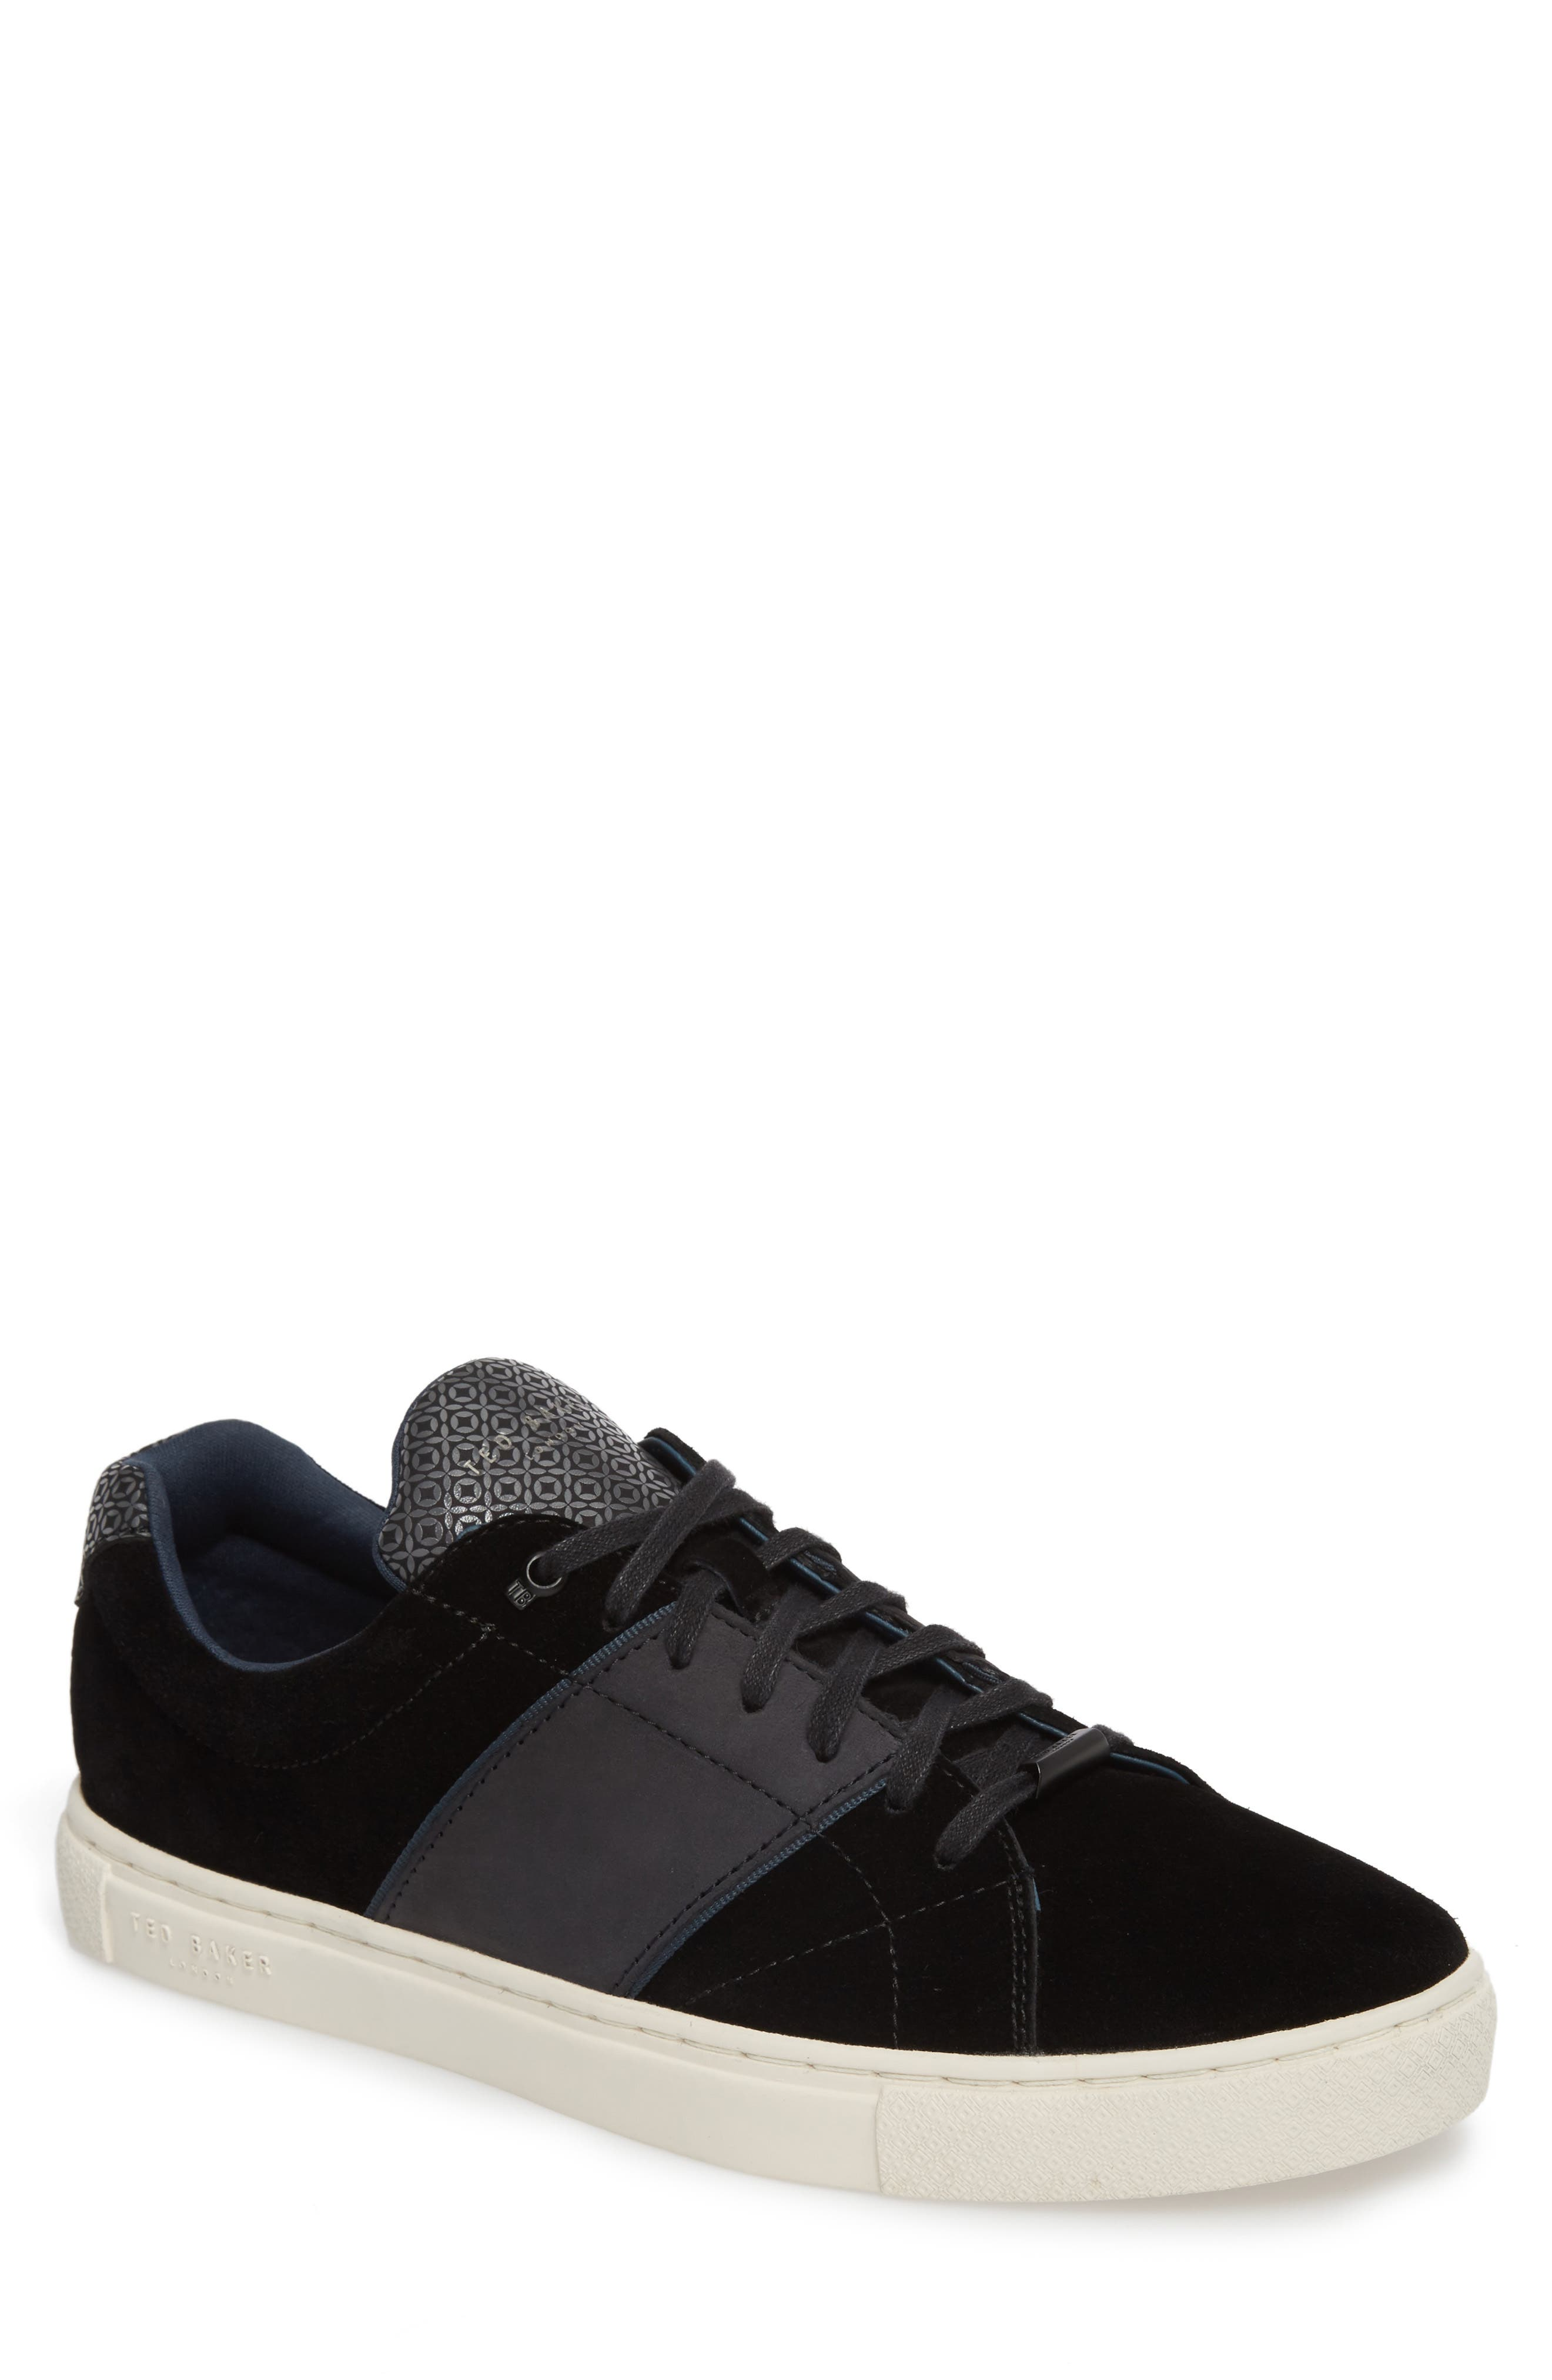 Dannez Low Top Sneaker,                         Main,                         color, 001